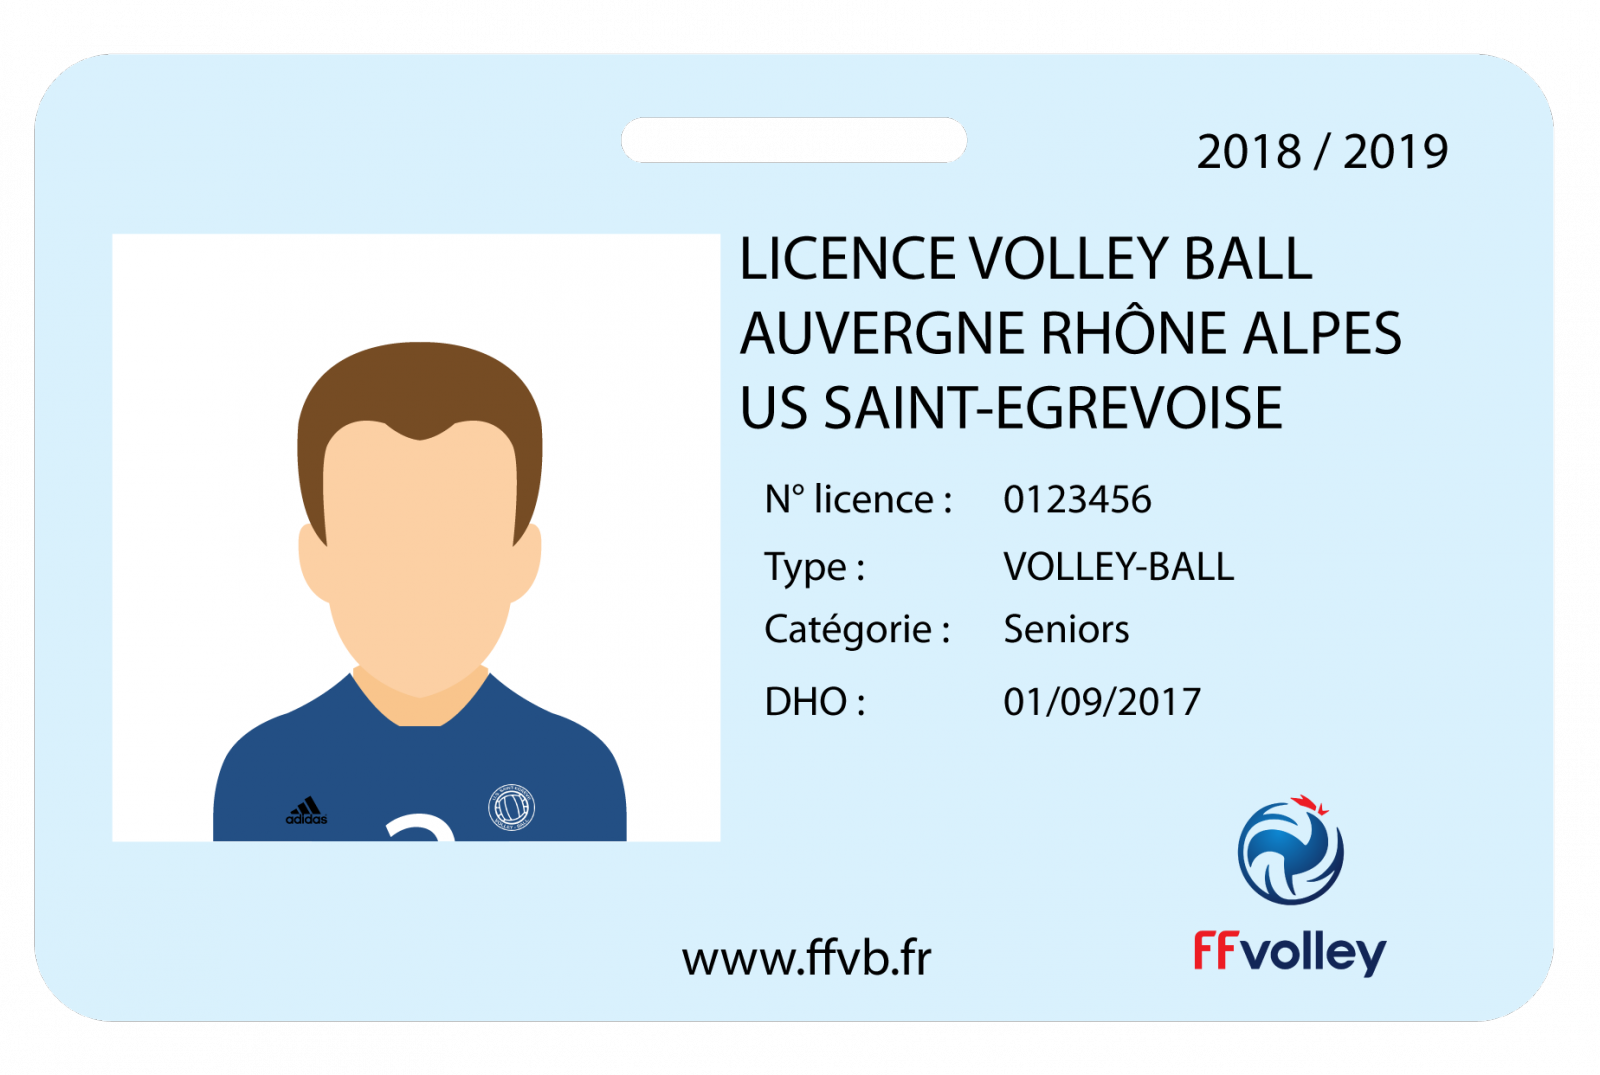 Documents de licence 2018 / 2019